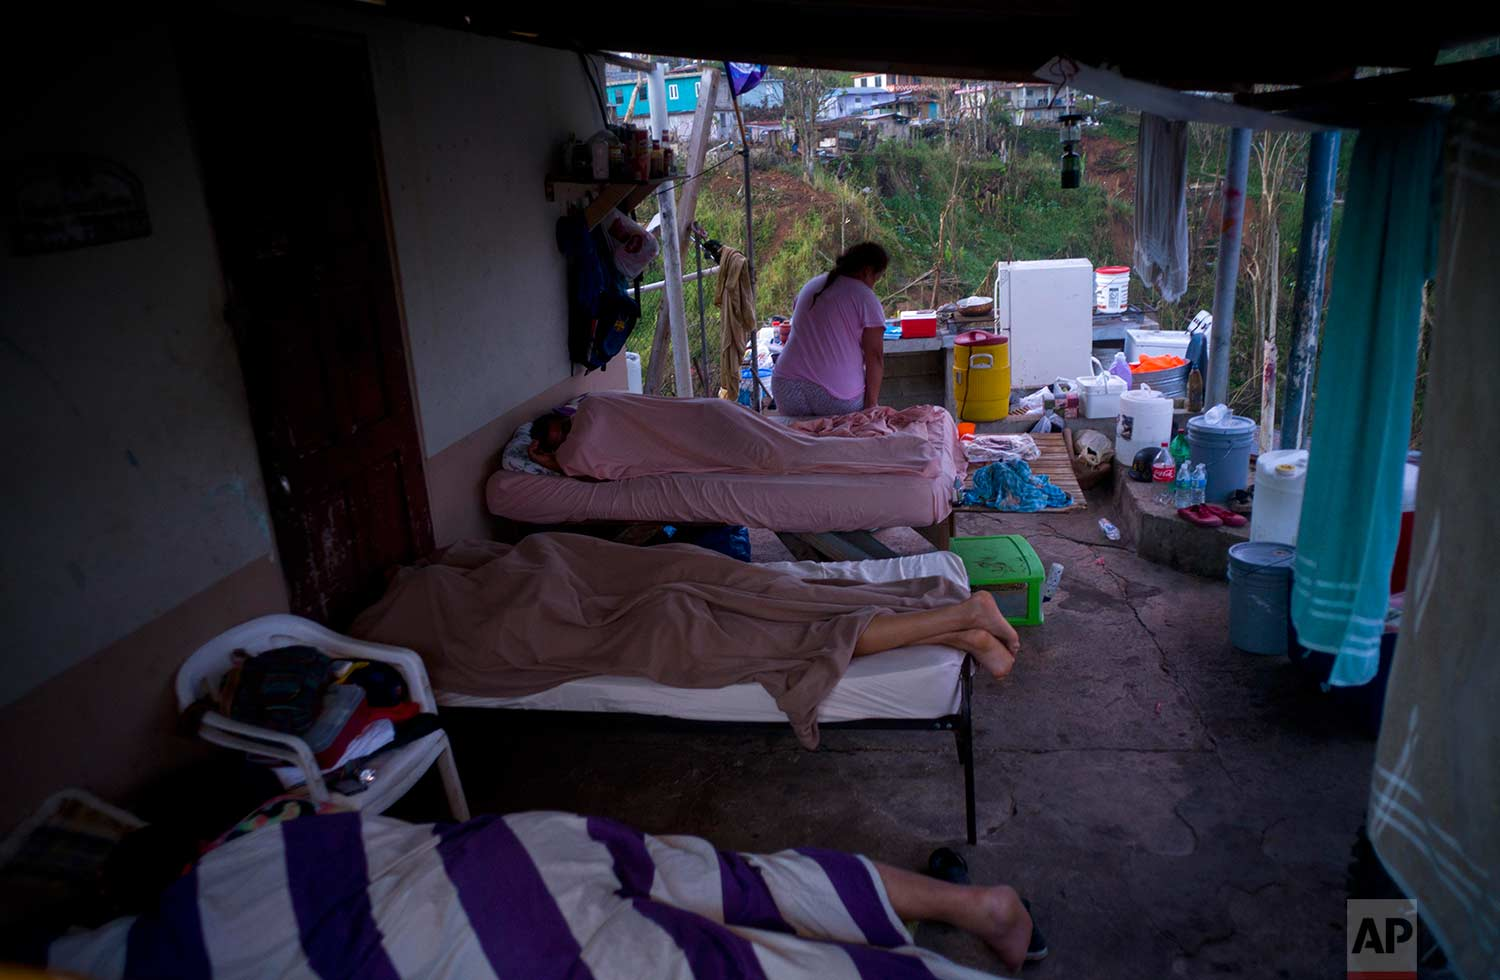 Julia Rivera gets up from the makeshift bed in the porch of her house as her children sleep, in Morovis, Puerto Rico, Sunday, Oct. 1, 2017. (AP Photo/Ramon Espinosa)